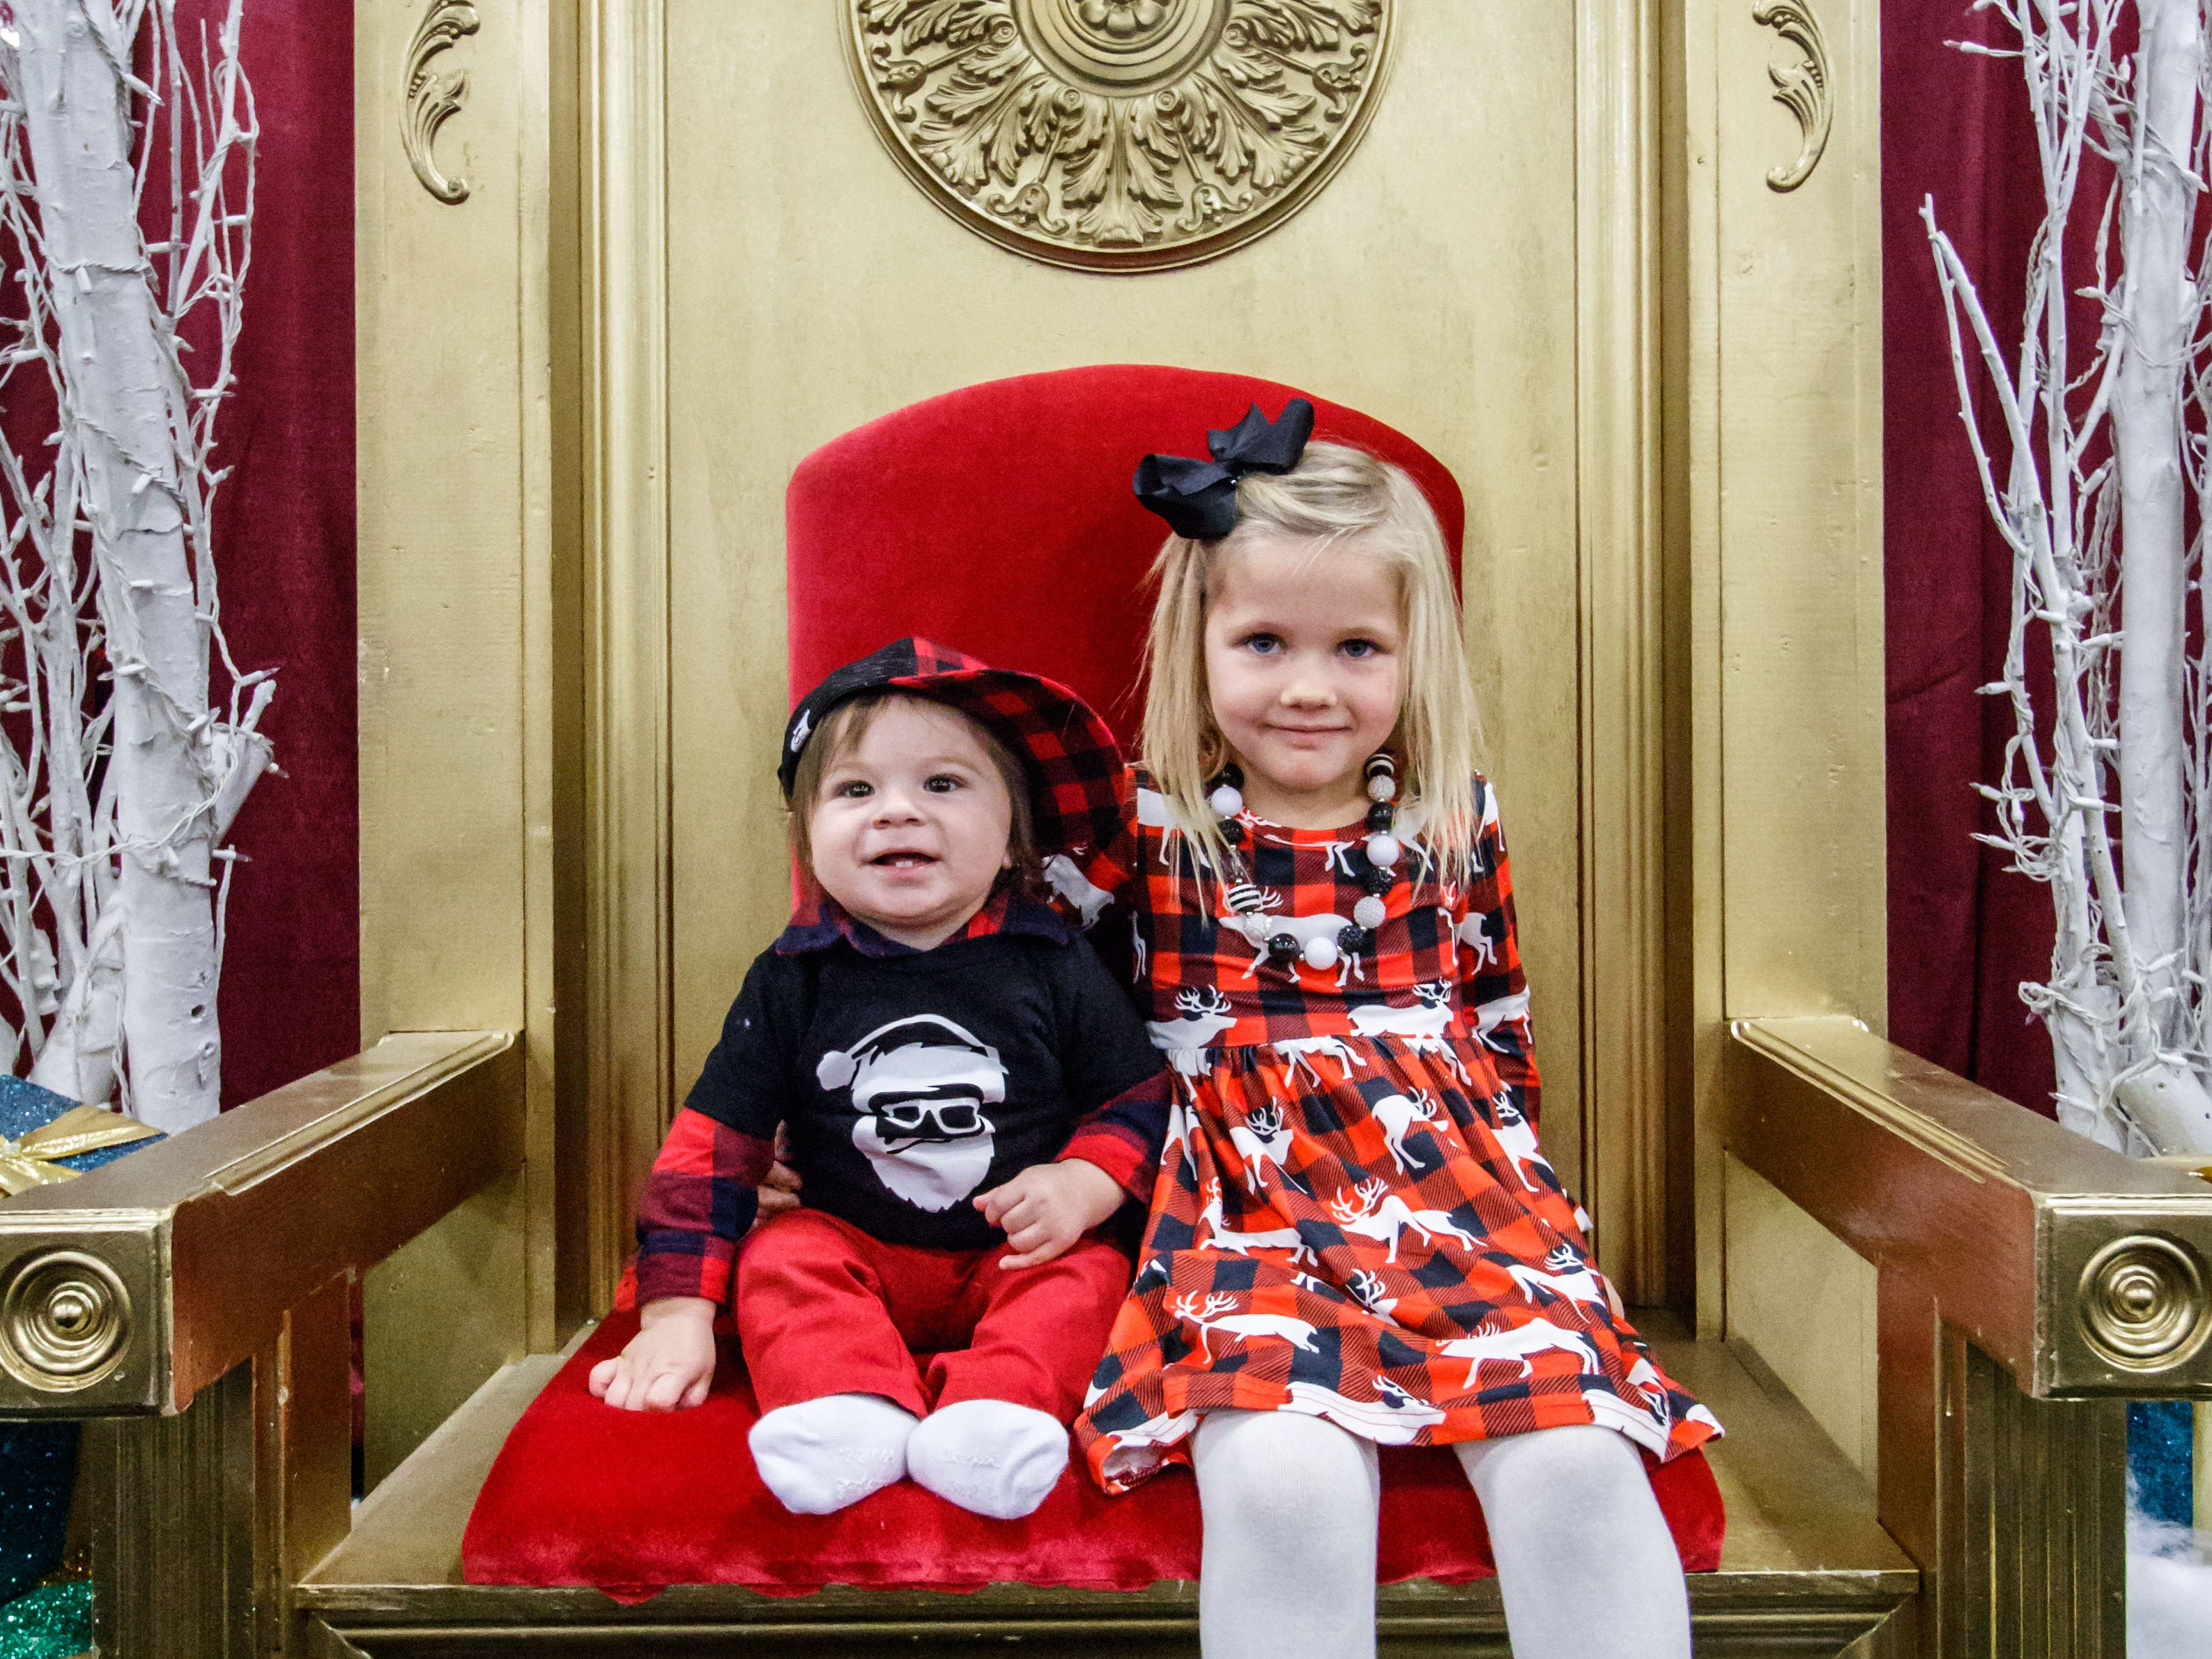 Nine-month-old Moses Zetina of Oconomowoc and Delanie Pfeiffer, 5, of Hartland, check out Santa's golden chair during the Milwaukee Holiday Boutique at Wisconsin State Fair Park on Friday, Nov. 2, 2018. The event features over 200 vendors, pictures with Santa, live entertainment and much more.